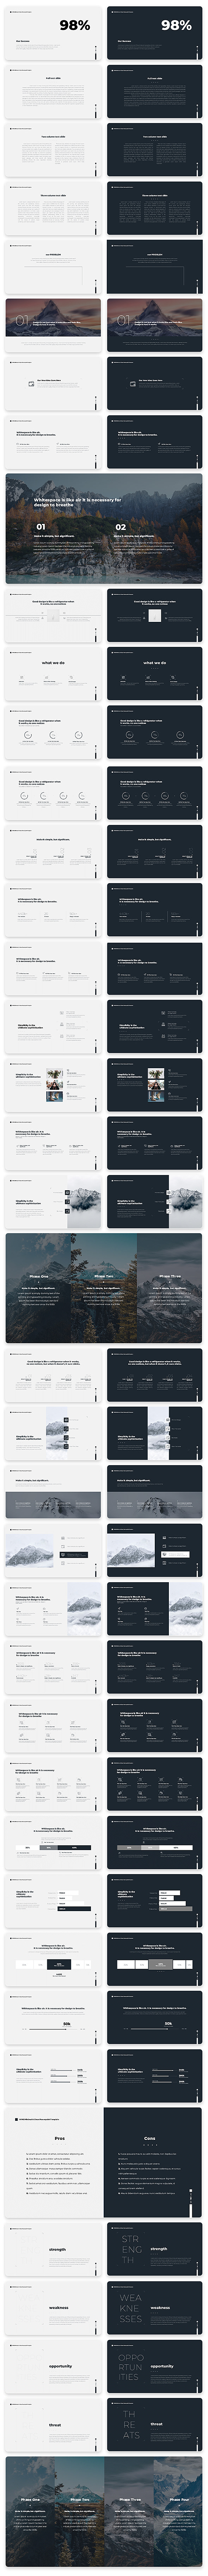 Wind Minimal & Clean Powerpoint With Text Animation Pack - 10